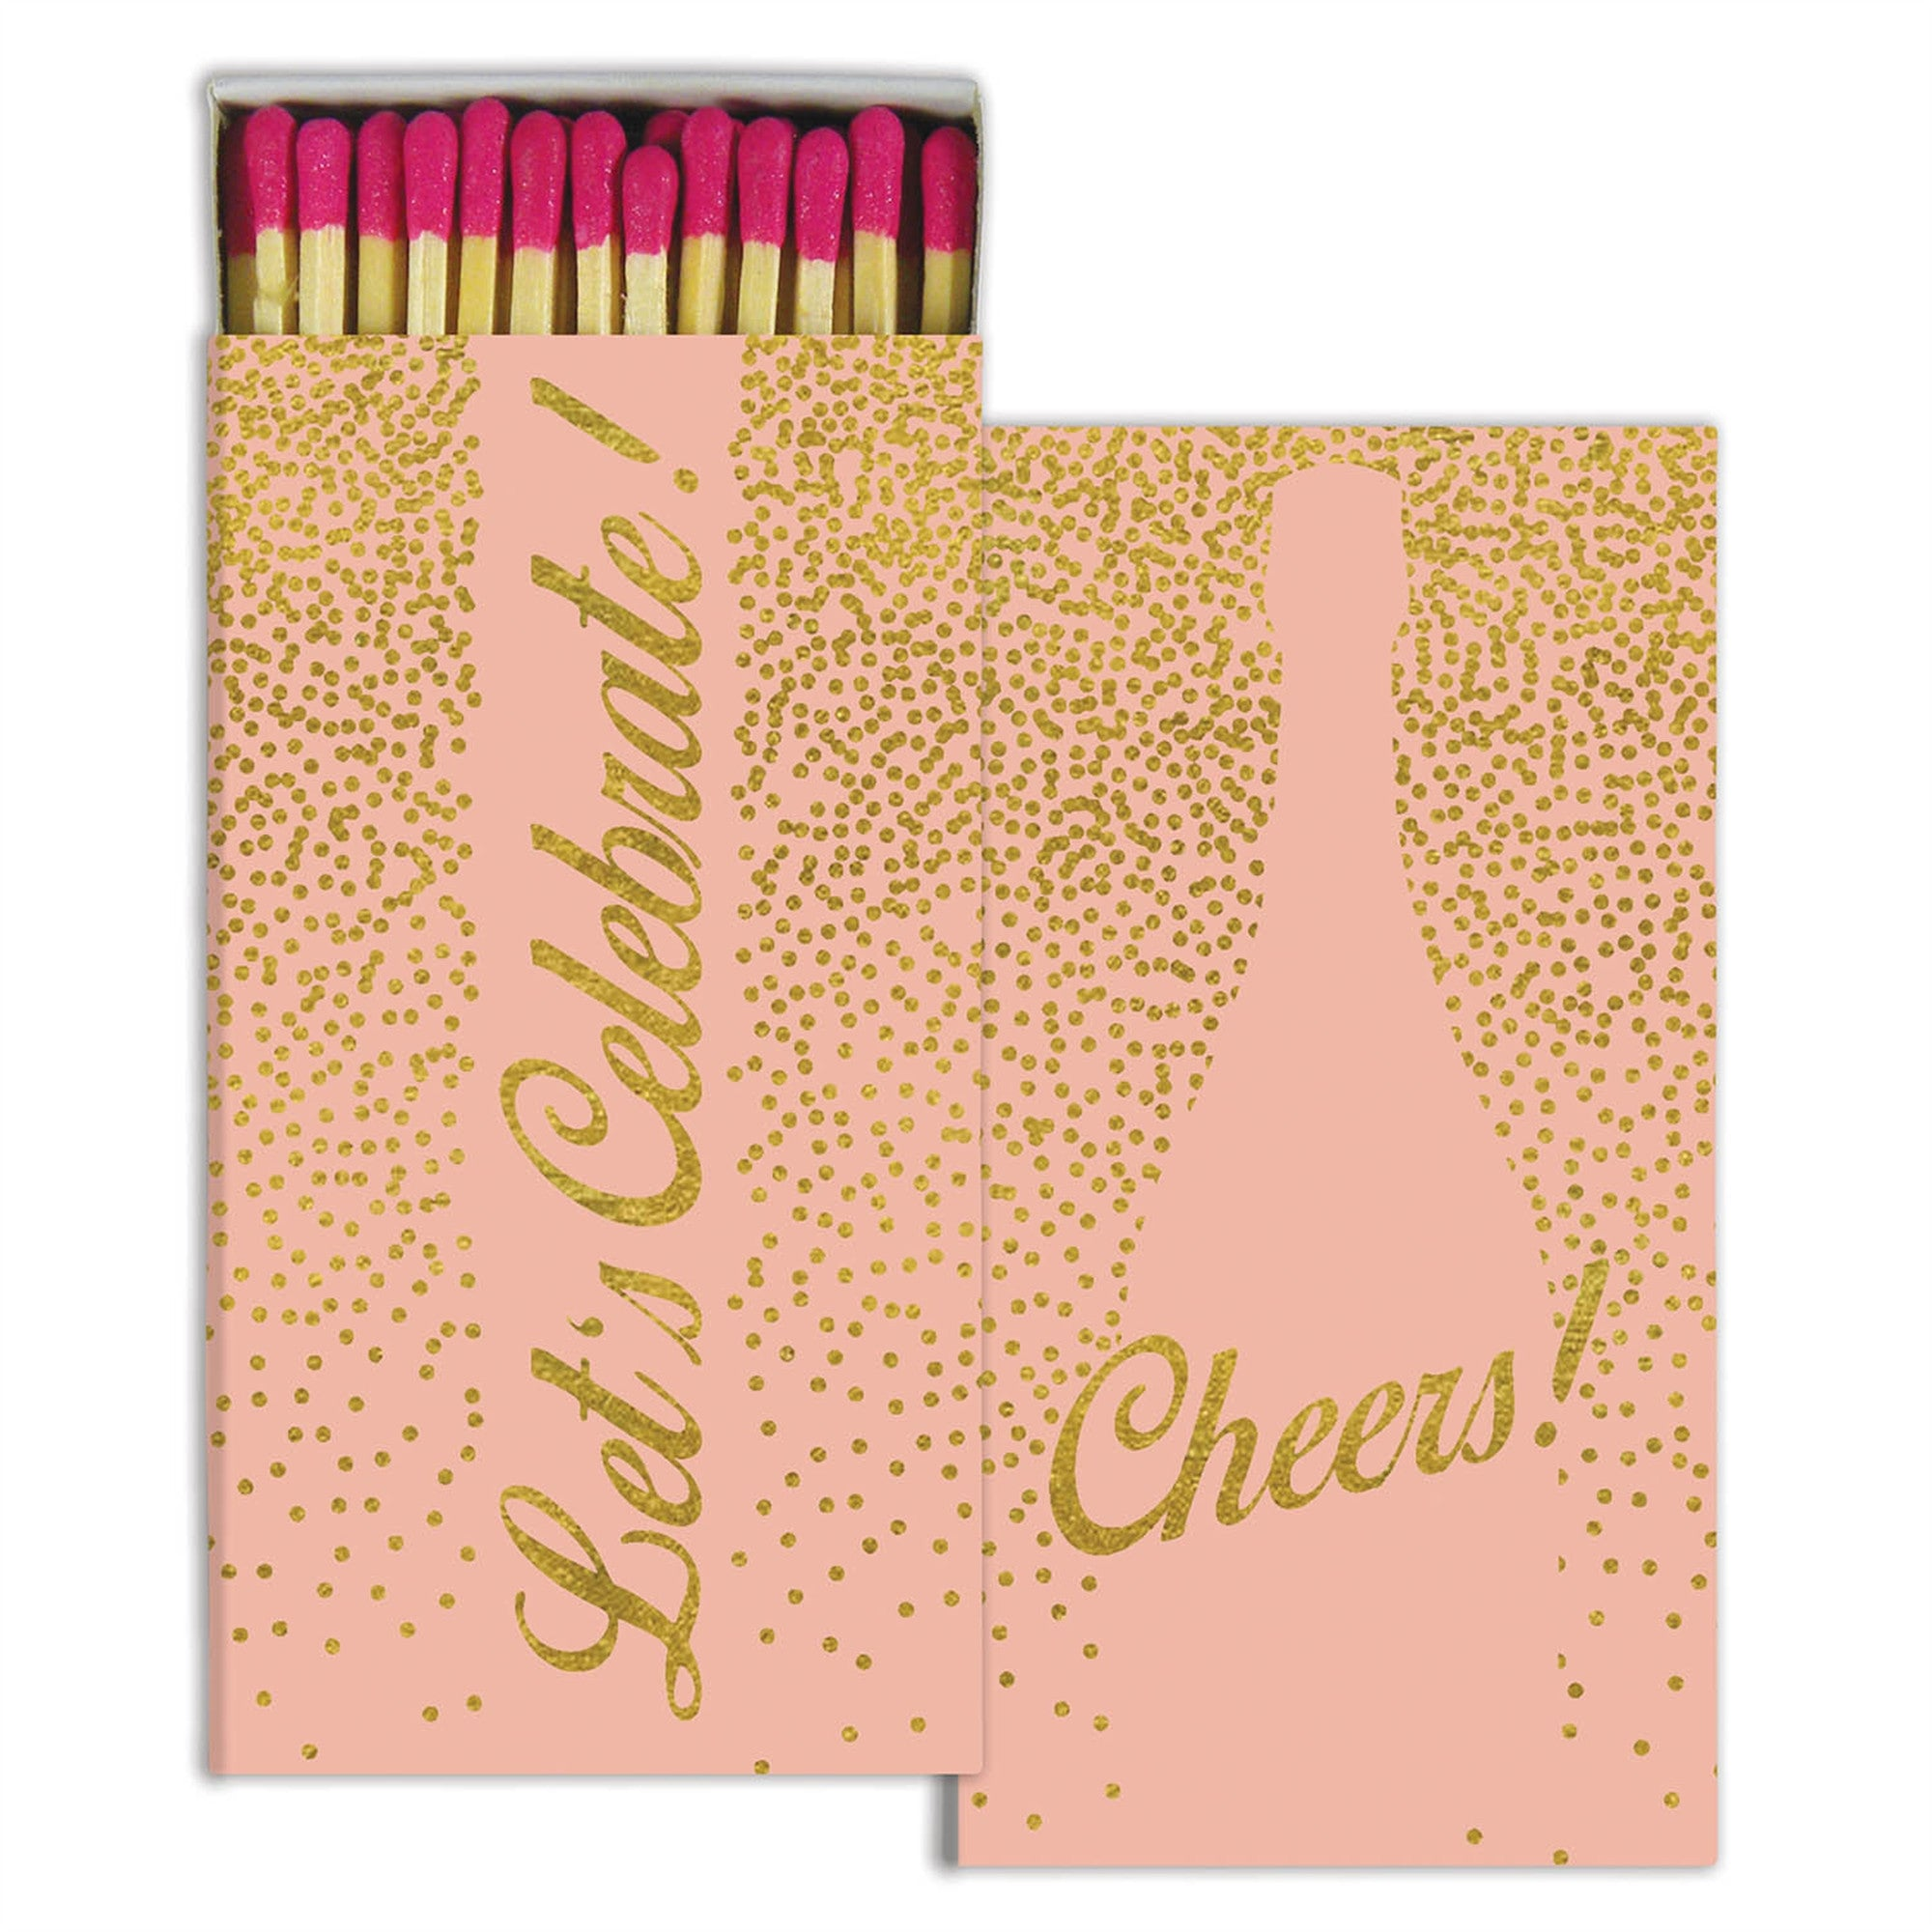 Matches - Cheers - Gold Foil - CARLYLE AVENUE